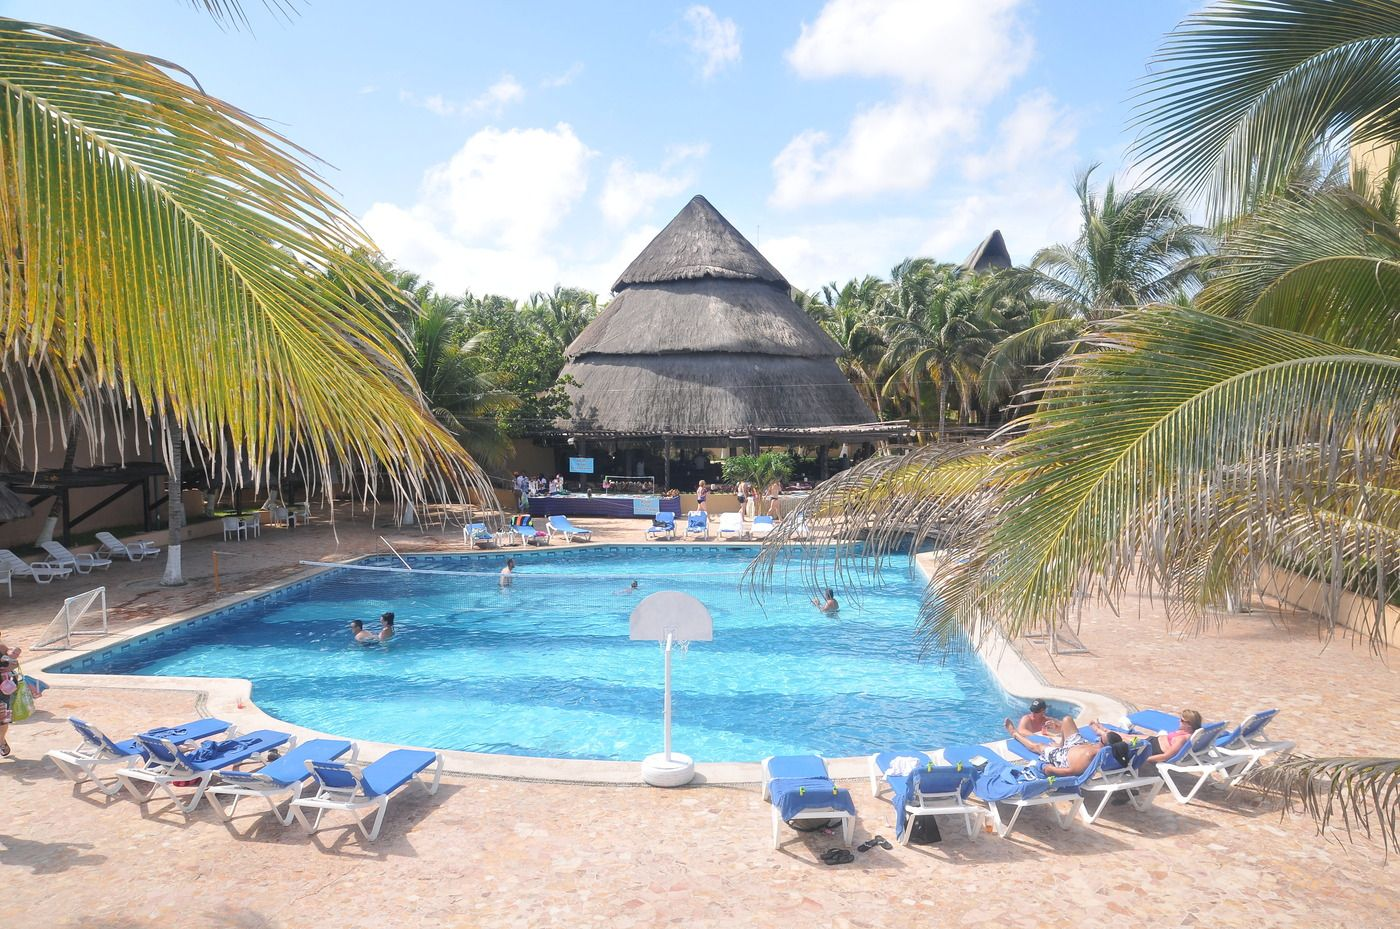 Getaway In Vip Style At The All Inclusive Reef Club Beach Resort With Open Bar And Traditional Mexican Snack Buffet Children 5 Under Are Free